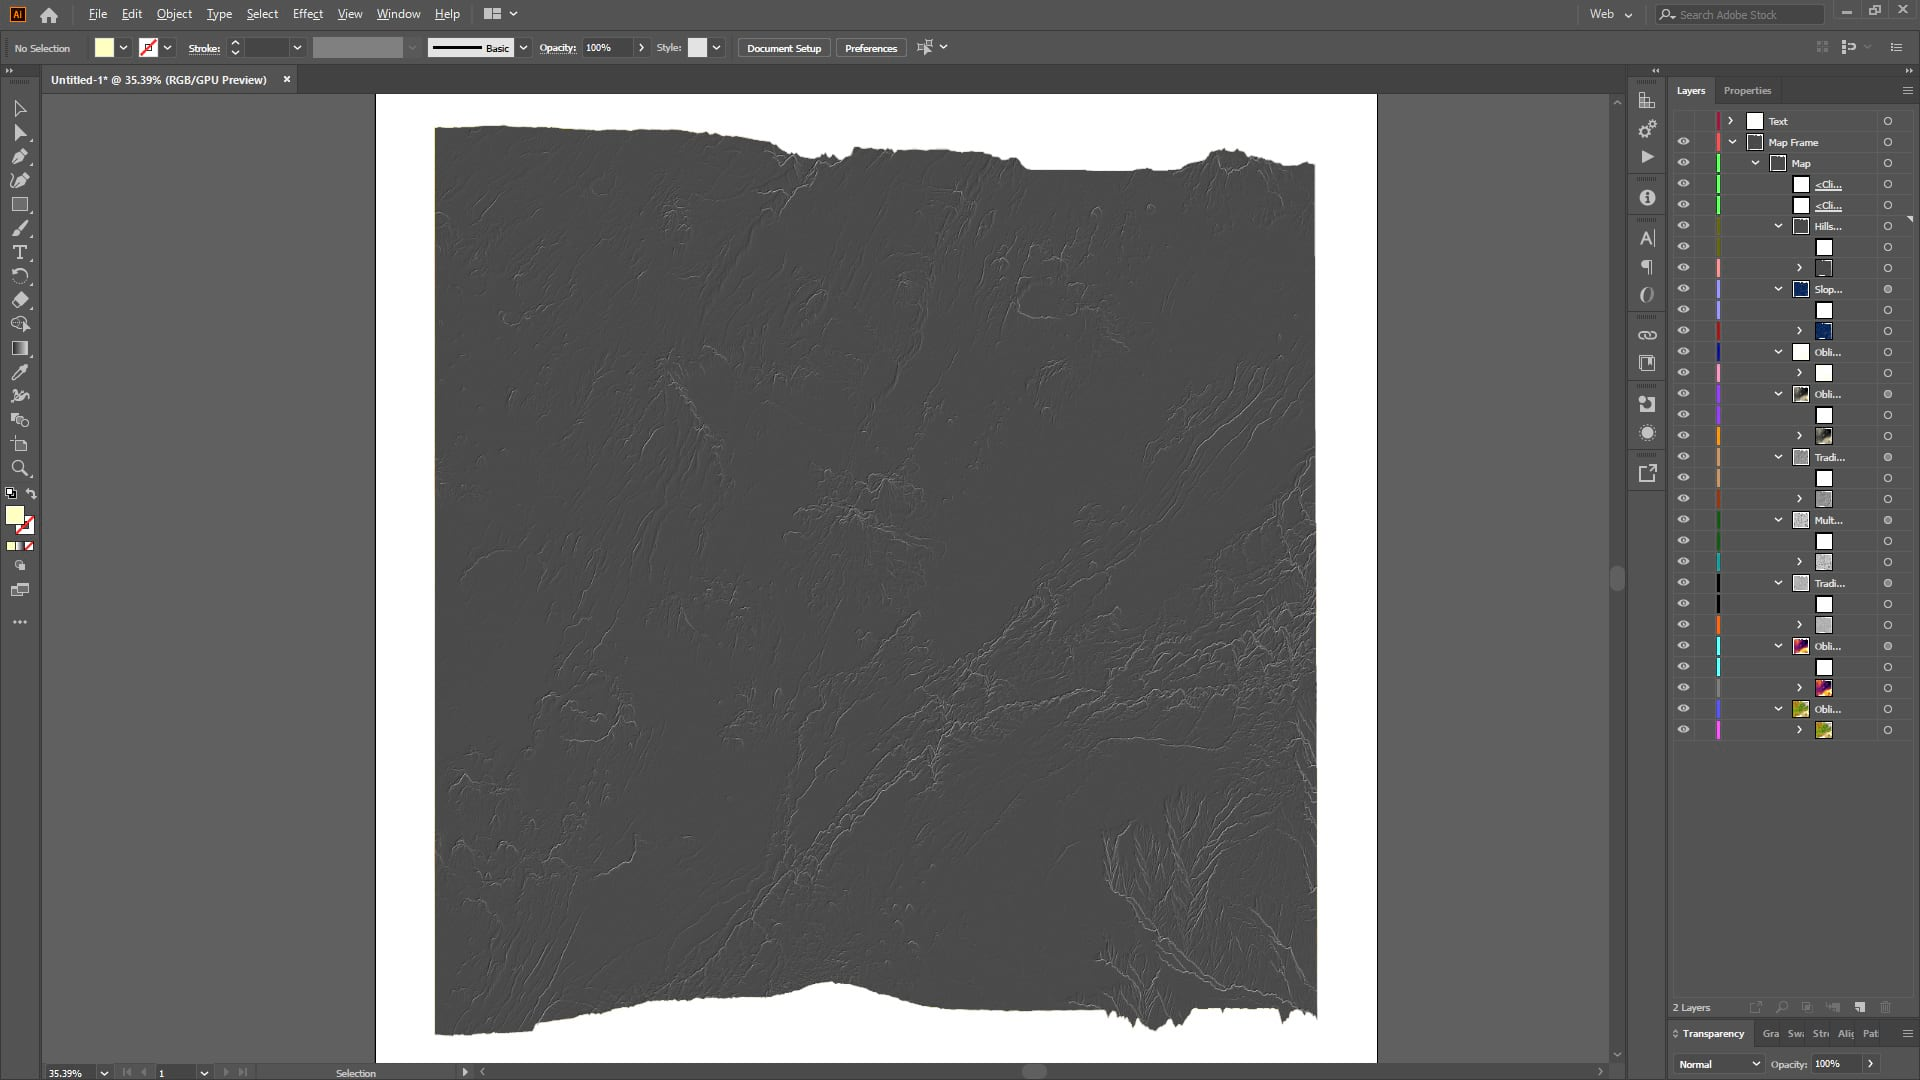 Layers are maintained in Illustrator using the Maps for Adobe export format.